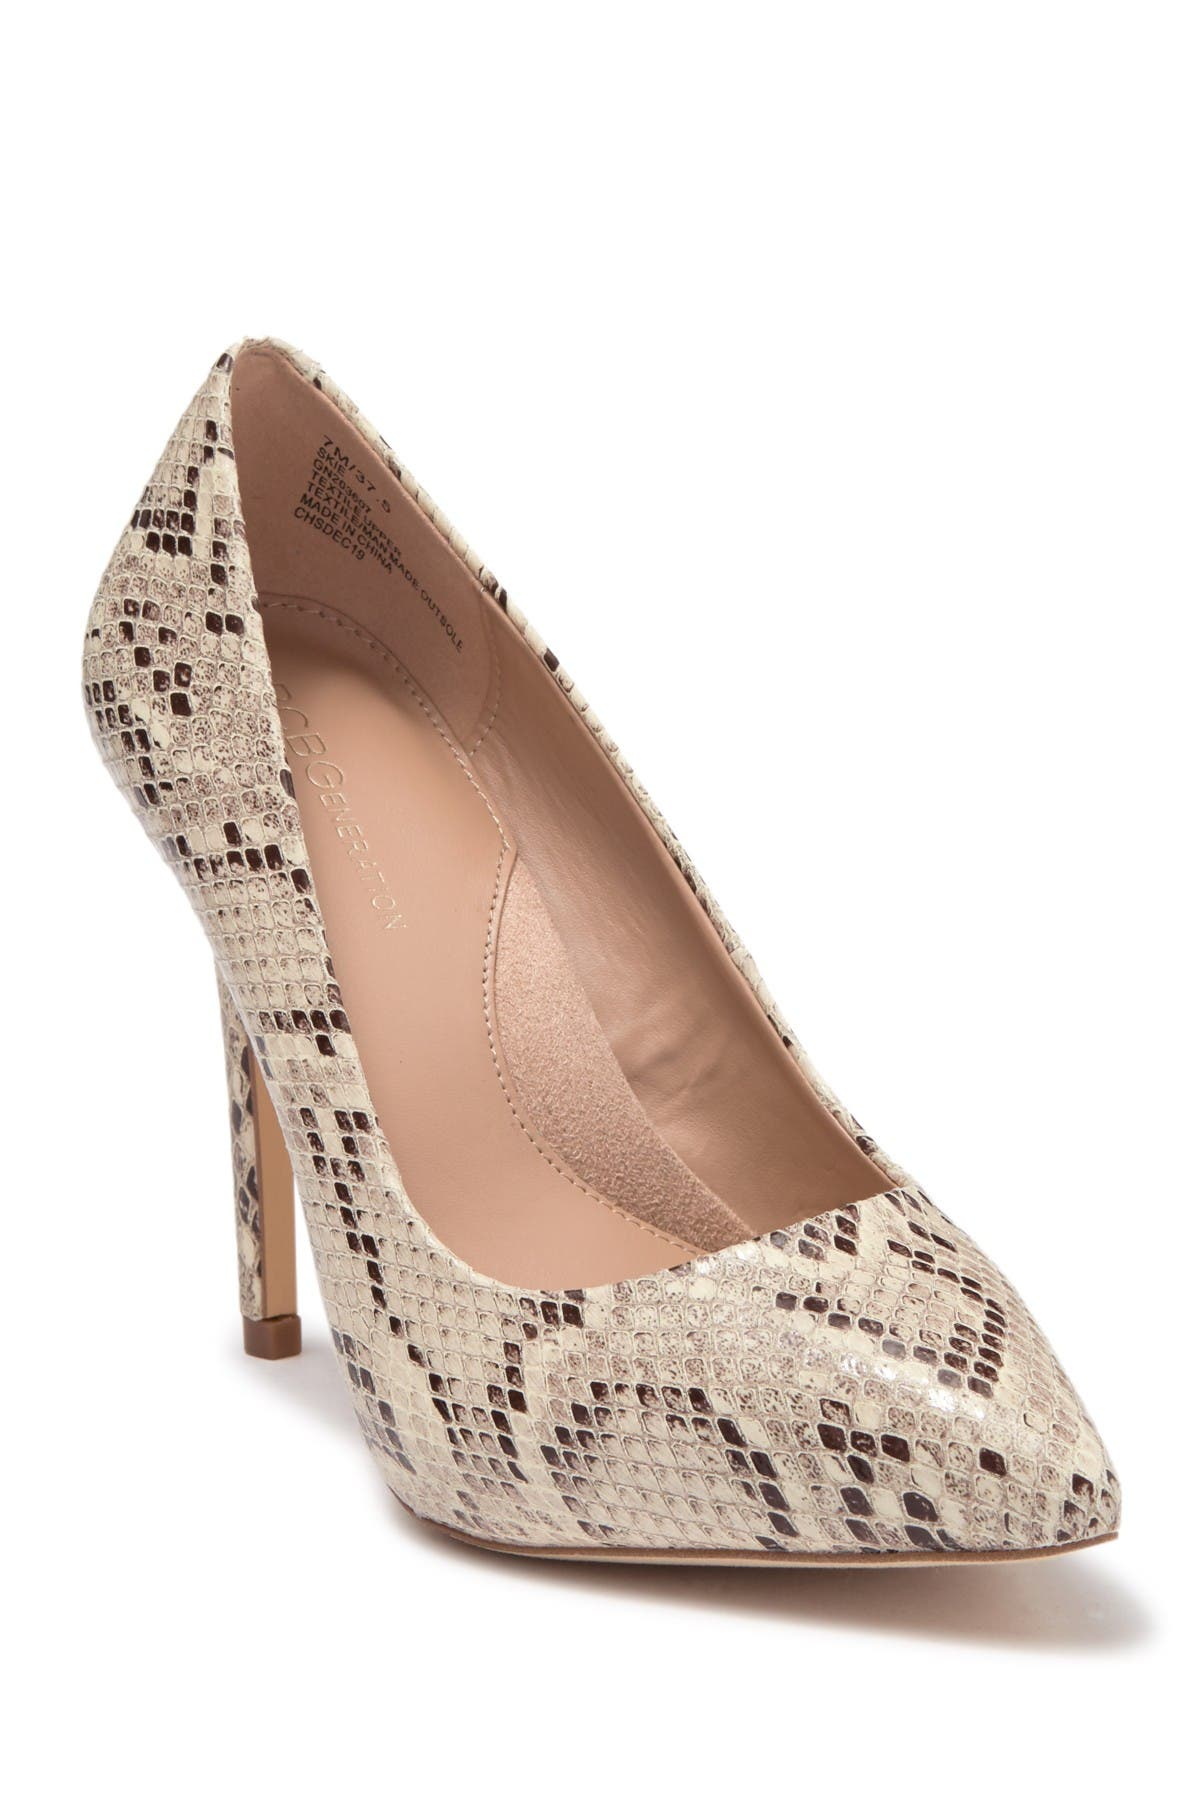 Image of BCBGeneration Skie Pointed Toe Pump